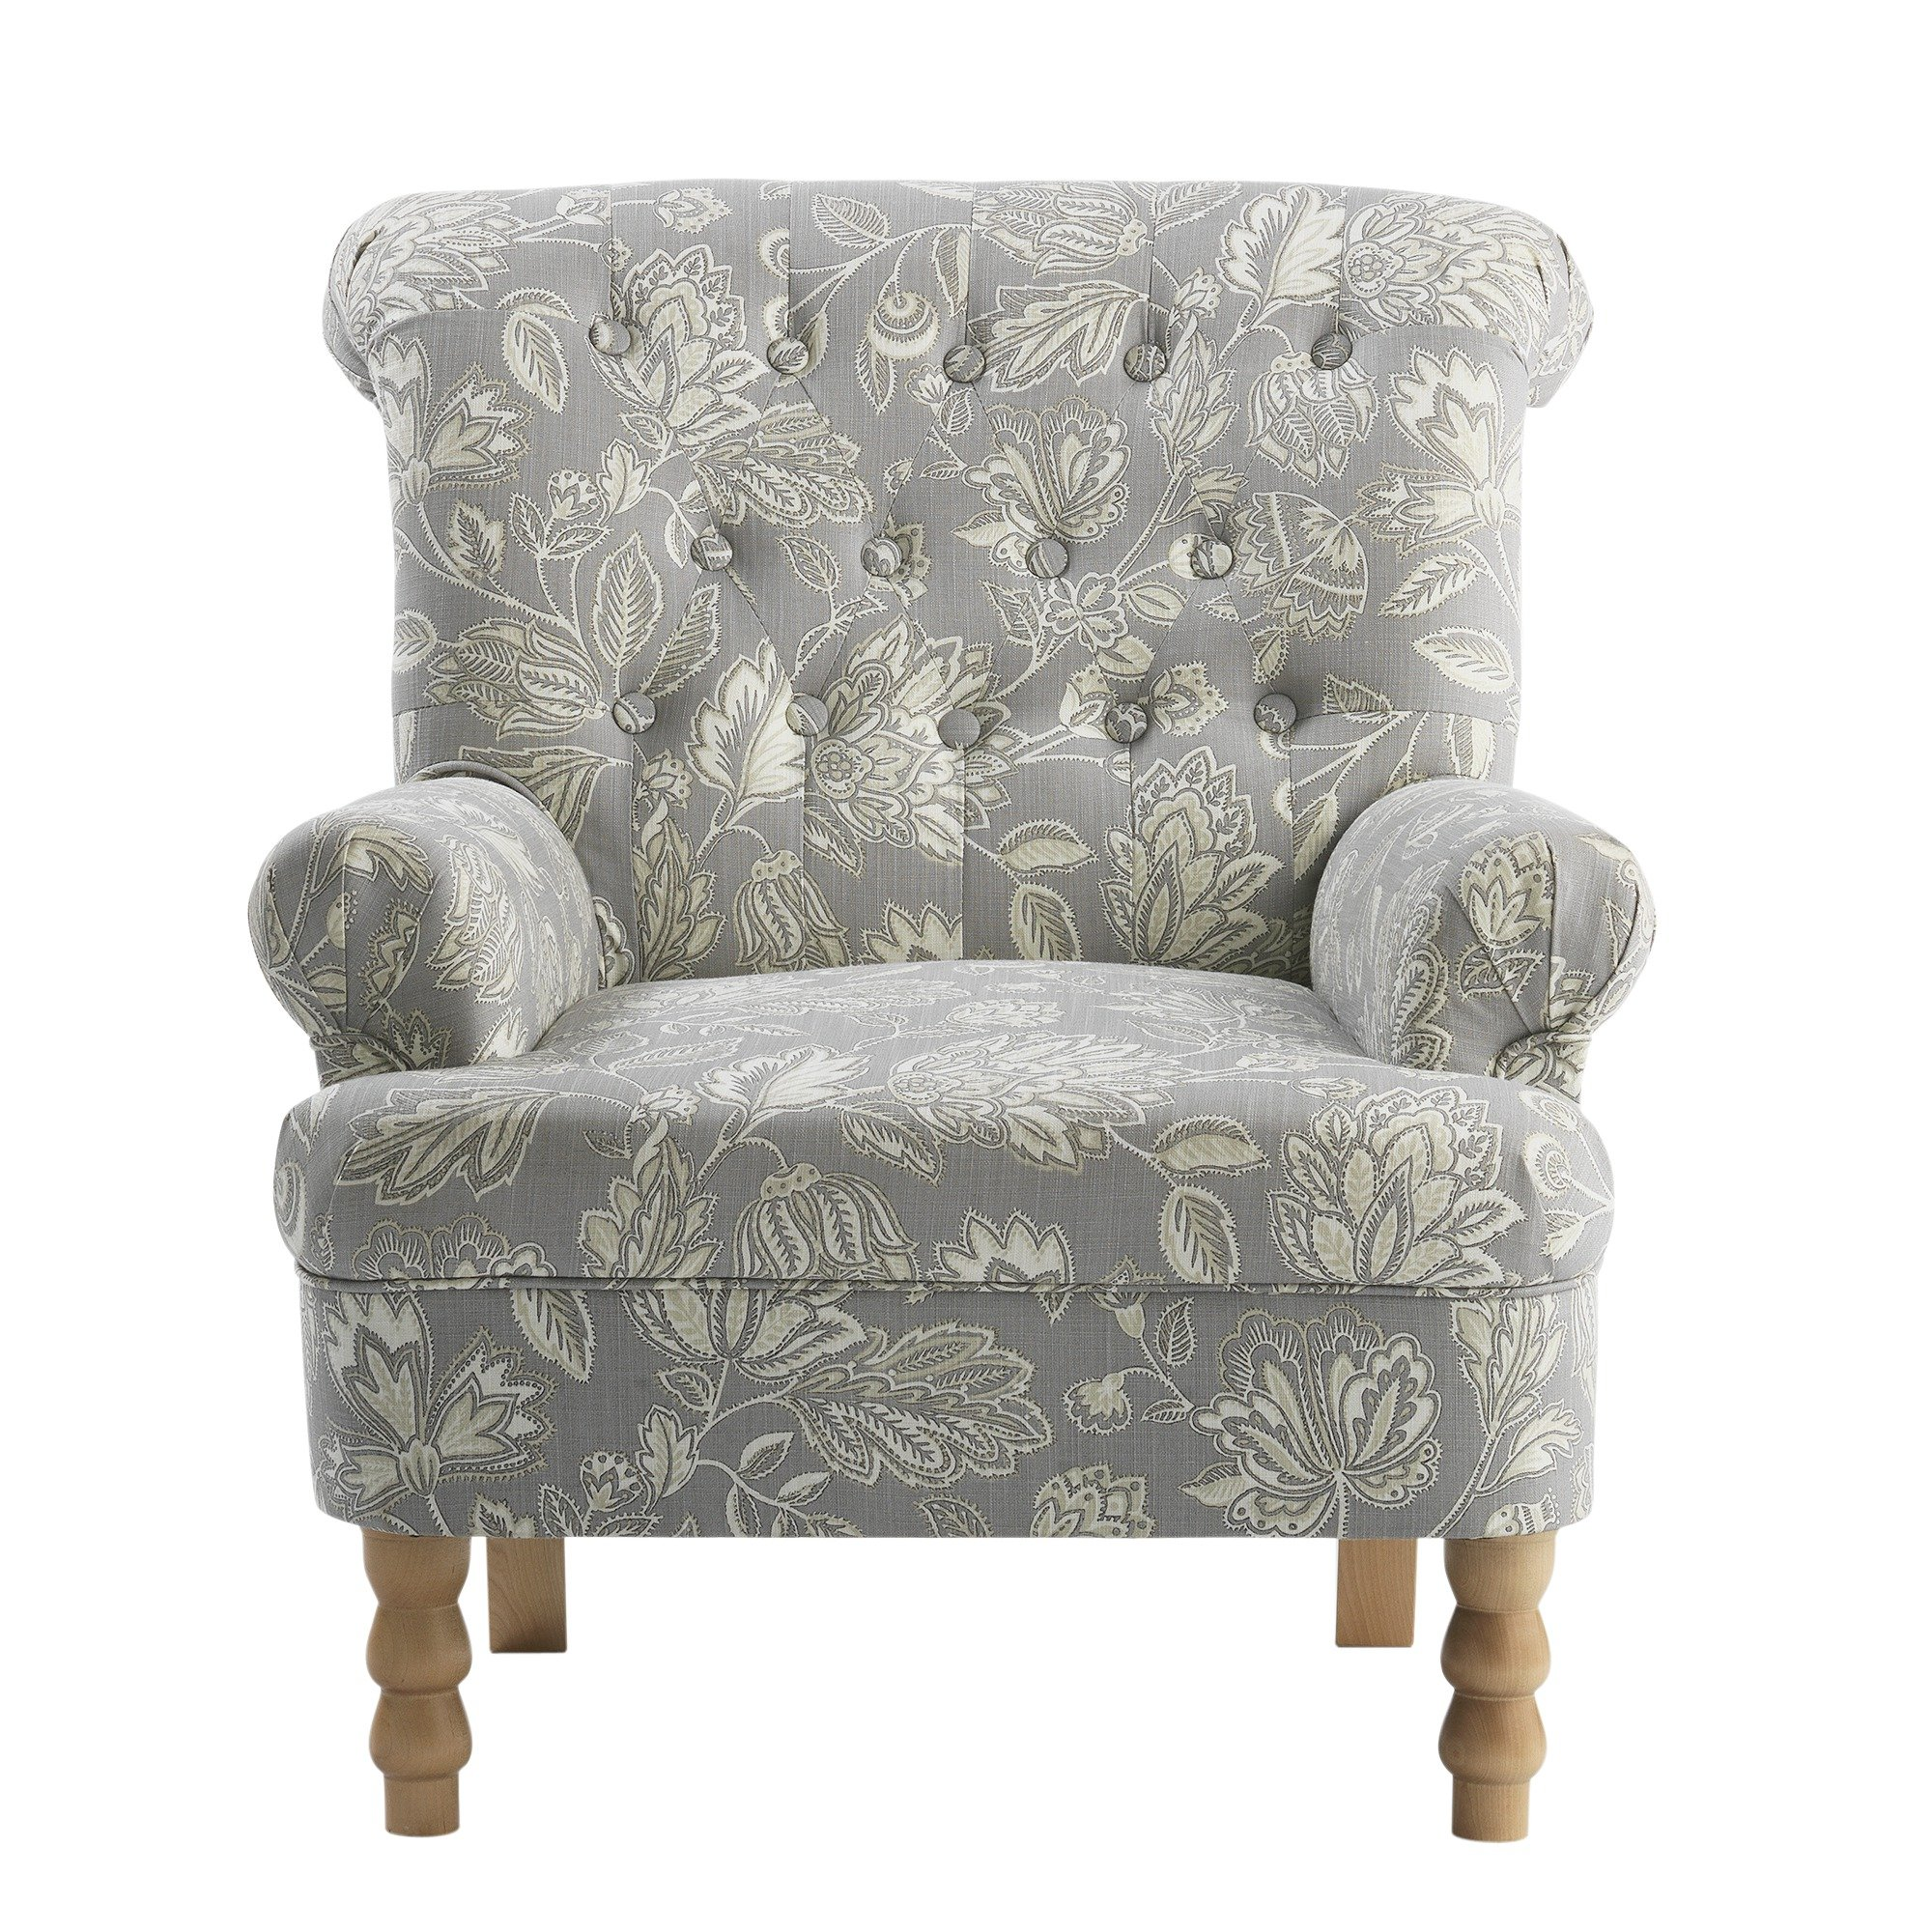 floral arm chair aluminum chaise lounge chairs buy argos home darcy fabric armchair armchairs and